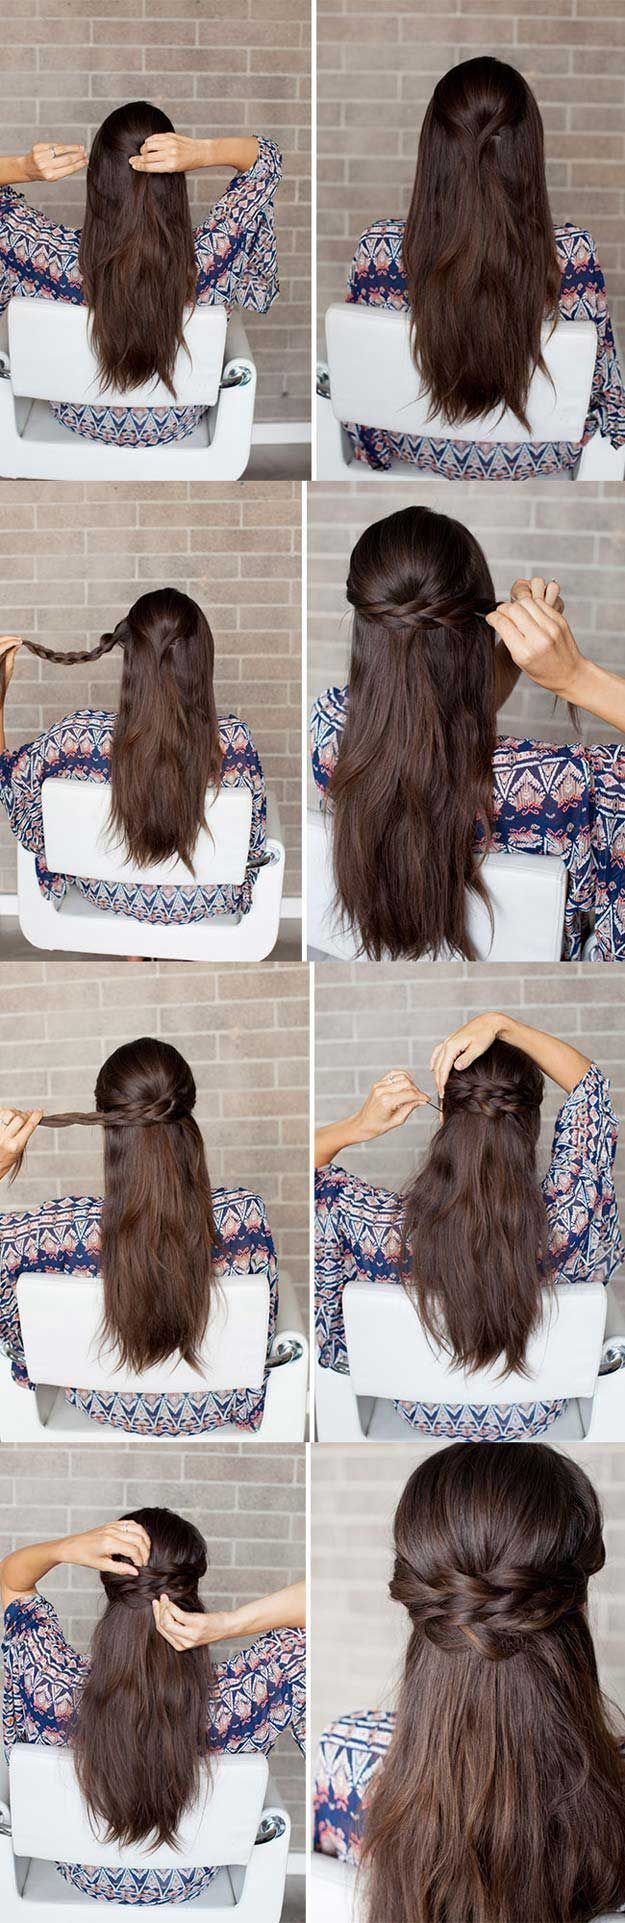 Amazing Half Up-Half Down Hairstyles For Long Hair – Braided Half-Up How-to – Ea…